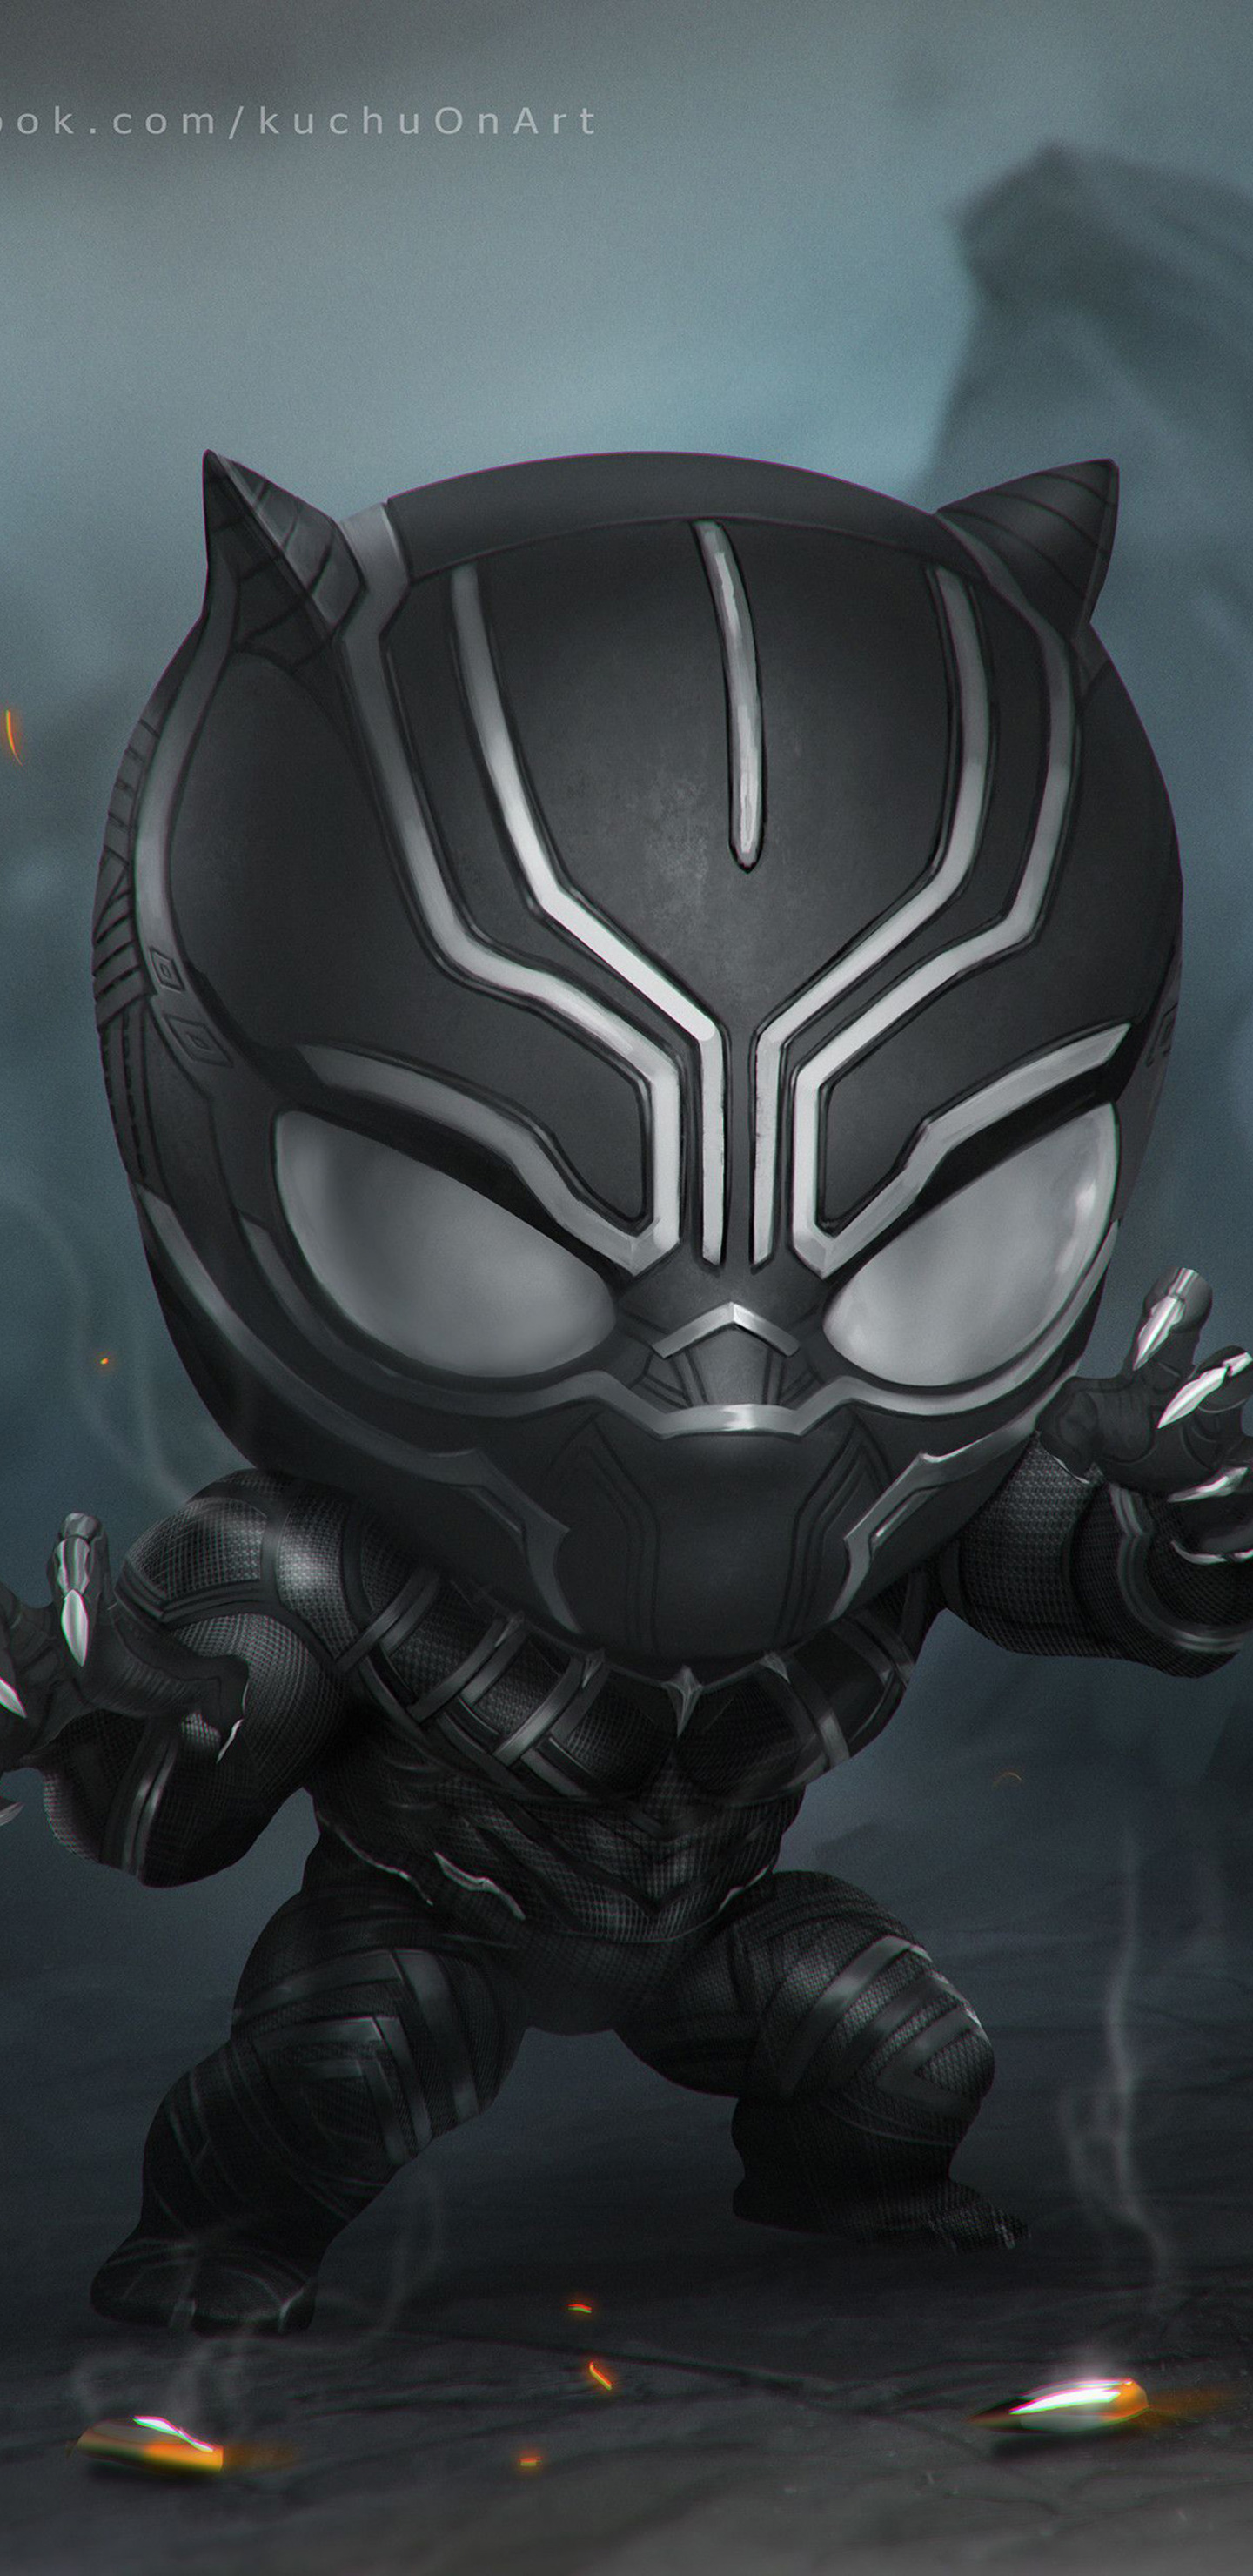 1440x2960 Black Panther Art Samsung Galaxy Note 9 8 S9 S8